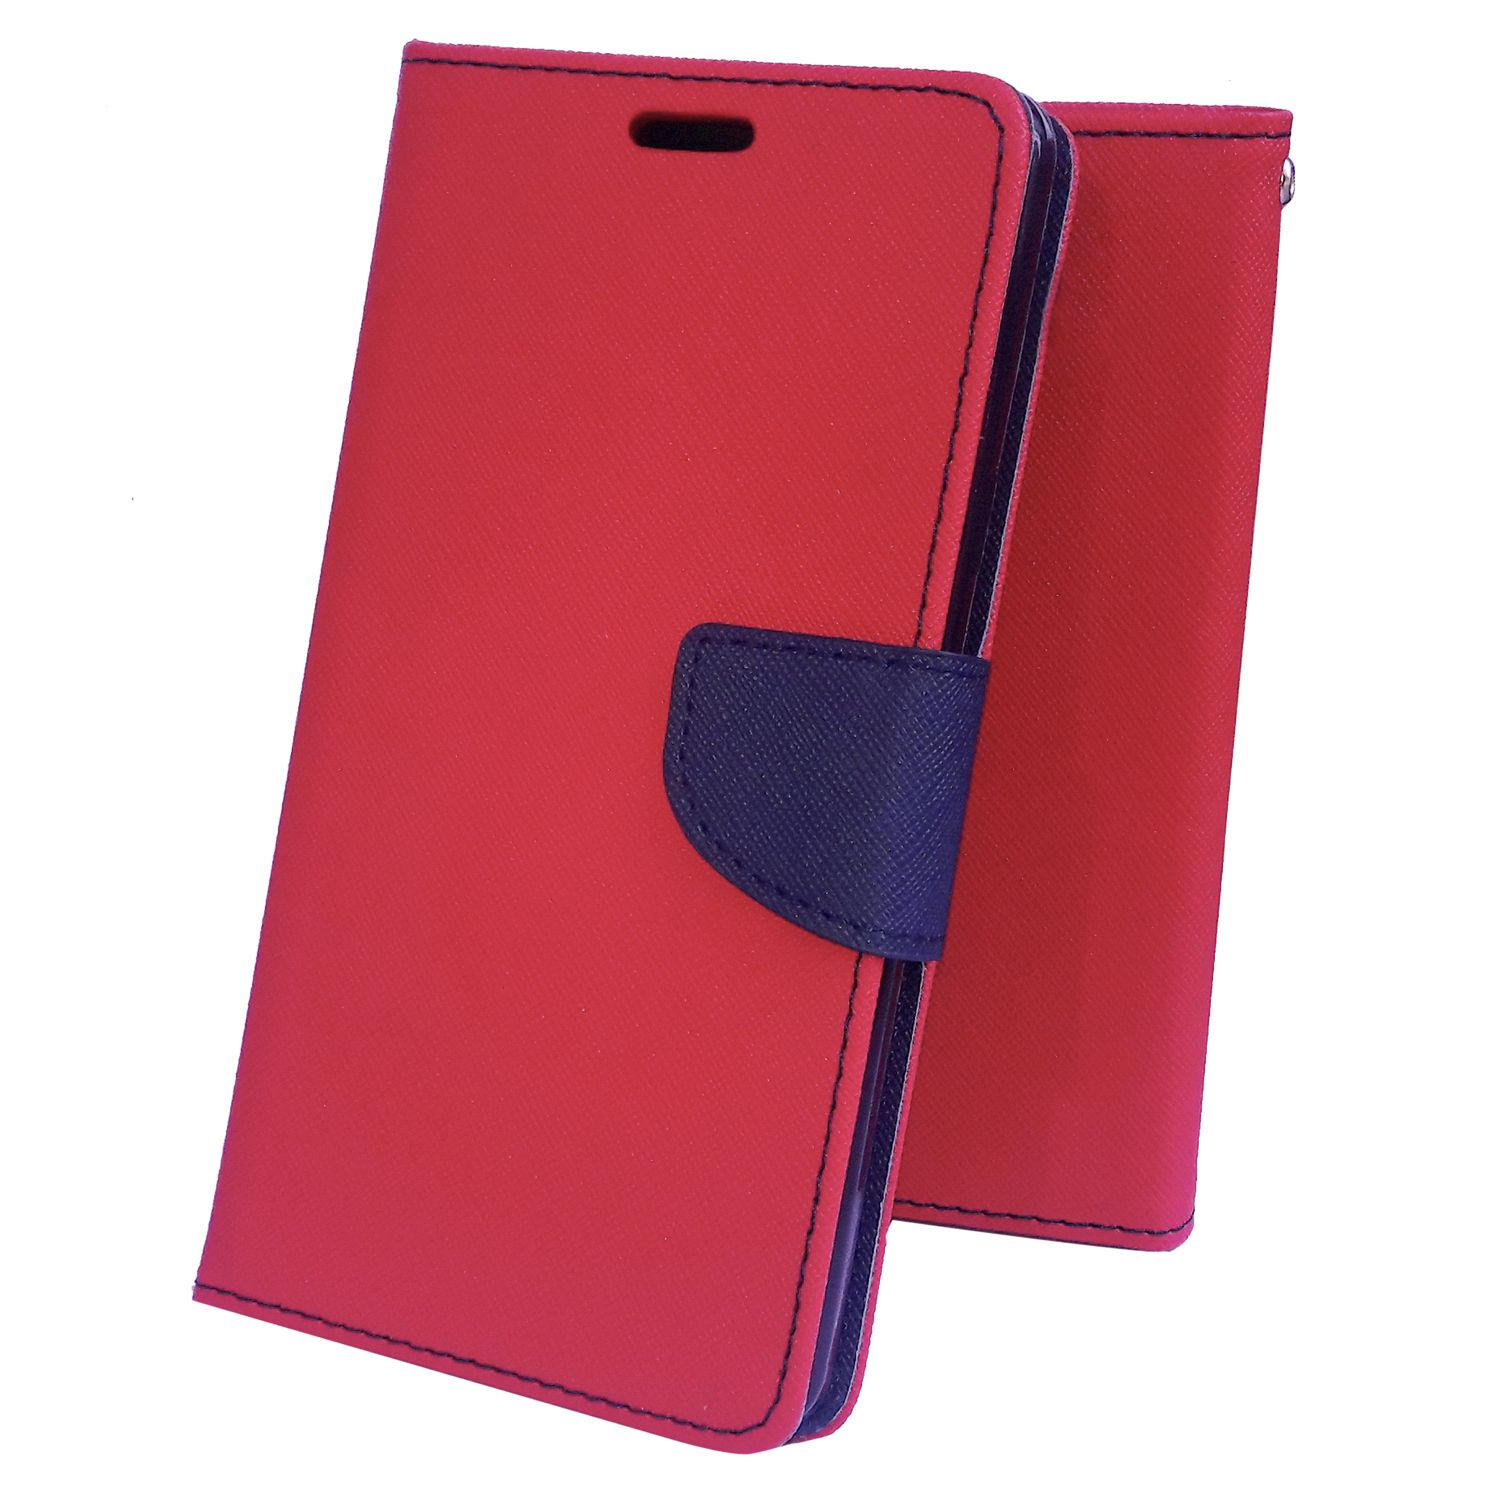 Samsung Galaxy Grand 2 Flip Cover by Moblo - Red